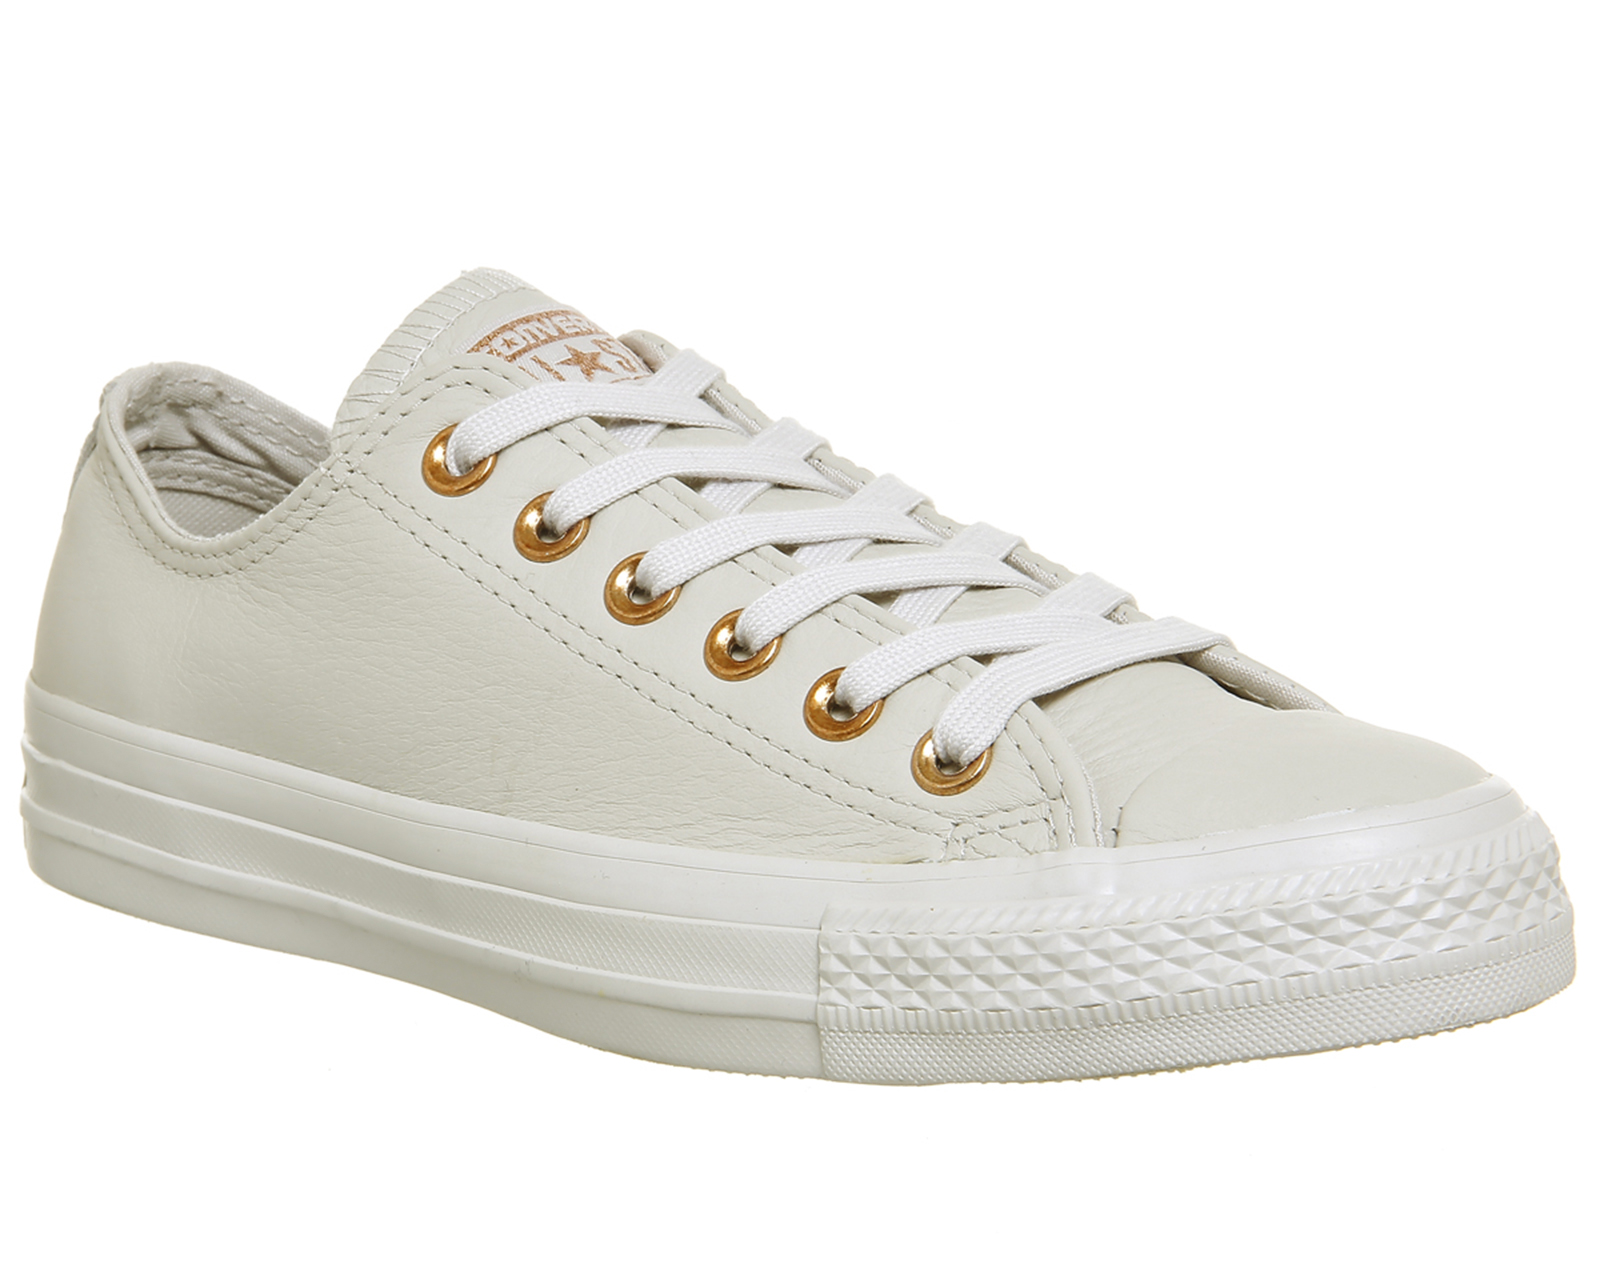 3bc0acb08 Sentinel Womens Converse All Star Low Leather Pale Putty Rose Gold Trainers  Shoes